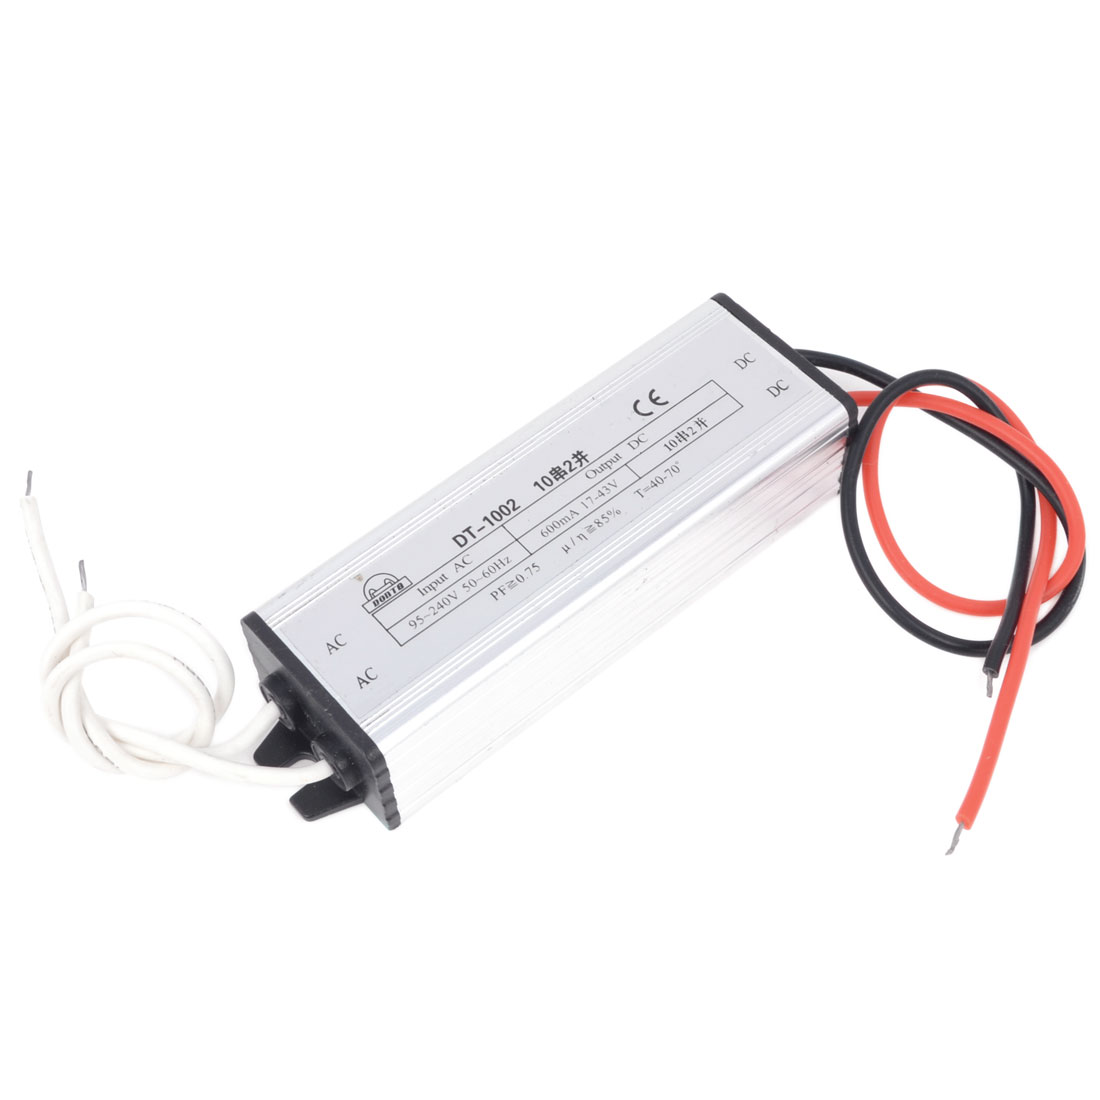 DC 17-43V 600mA 20W Aluminum Waterproof LED Driver Transformer Power Supply